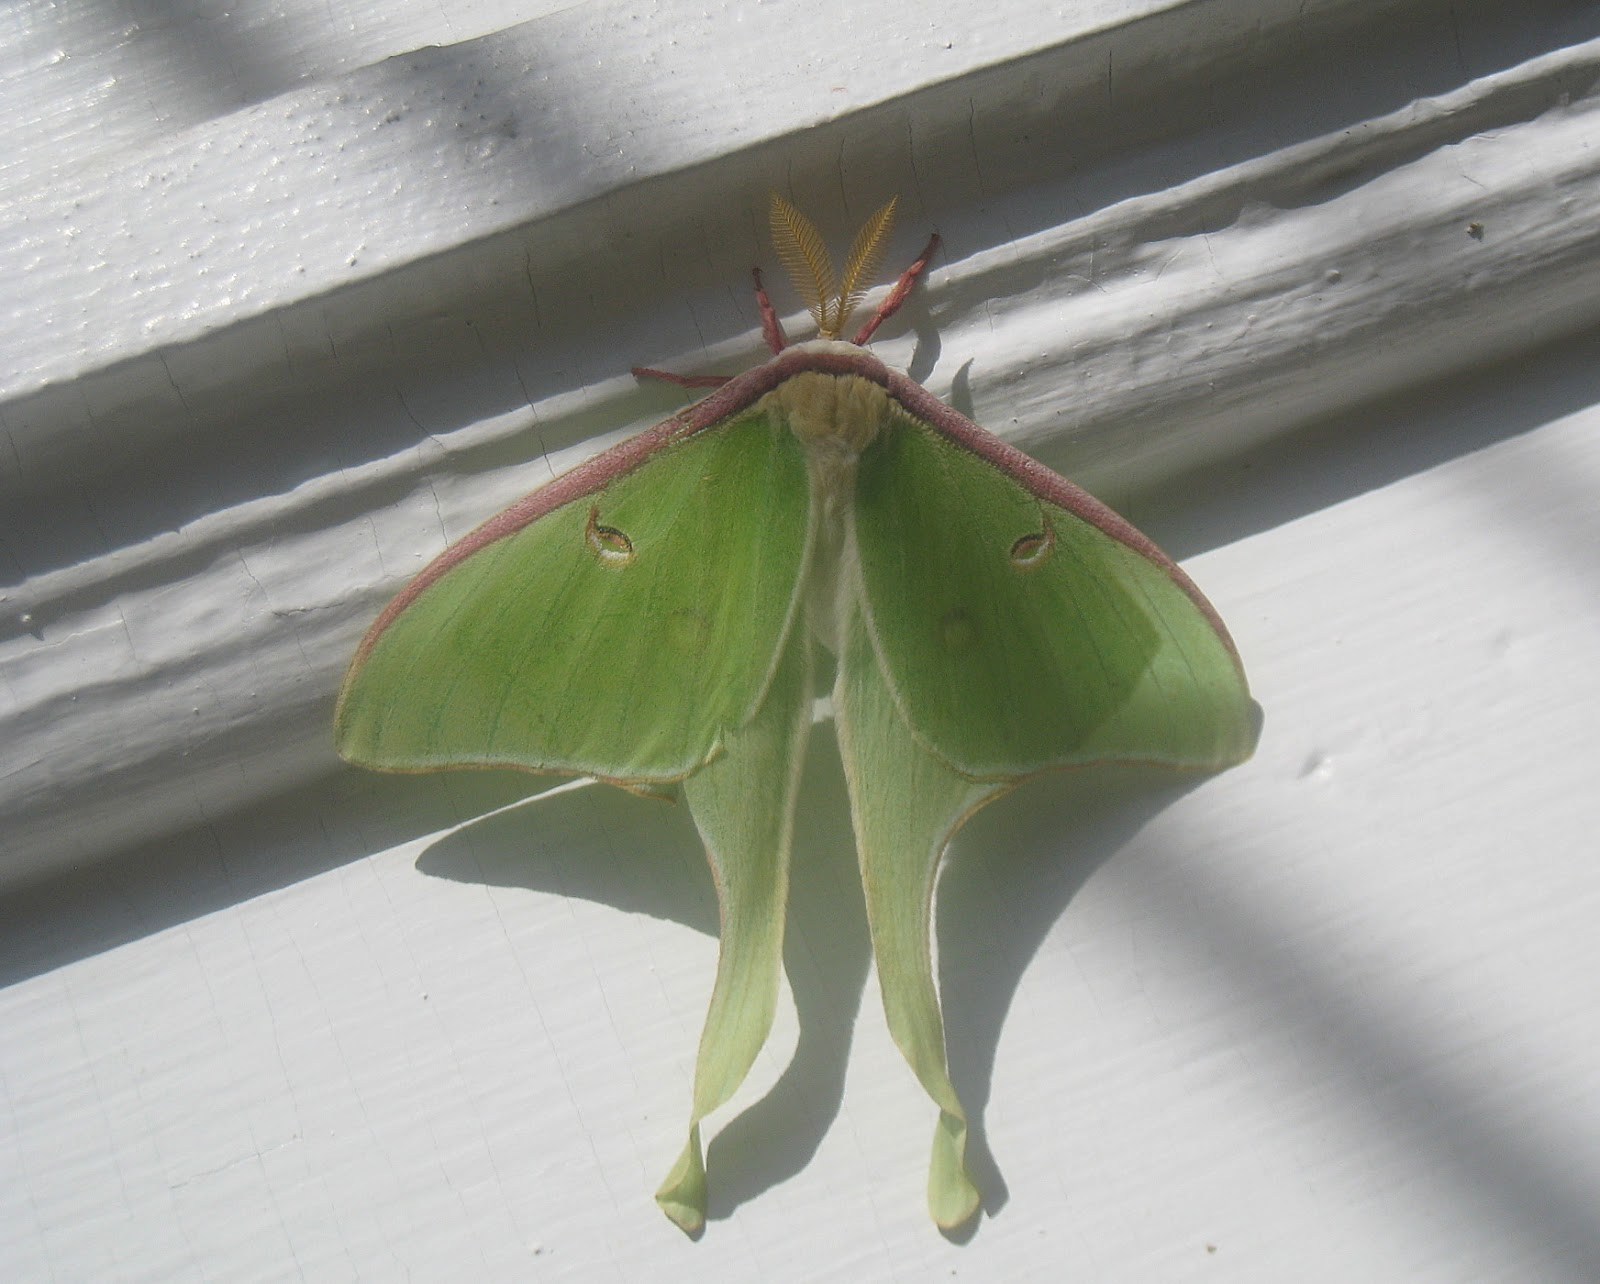 Maynard life outdoors and hidden history of maynard luna moth luna moth photos symbolism and a poem buycottarizona